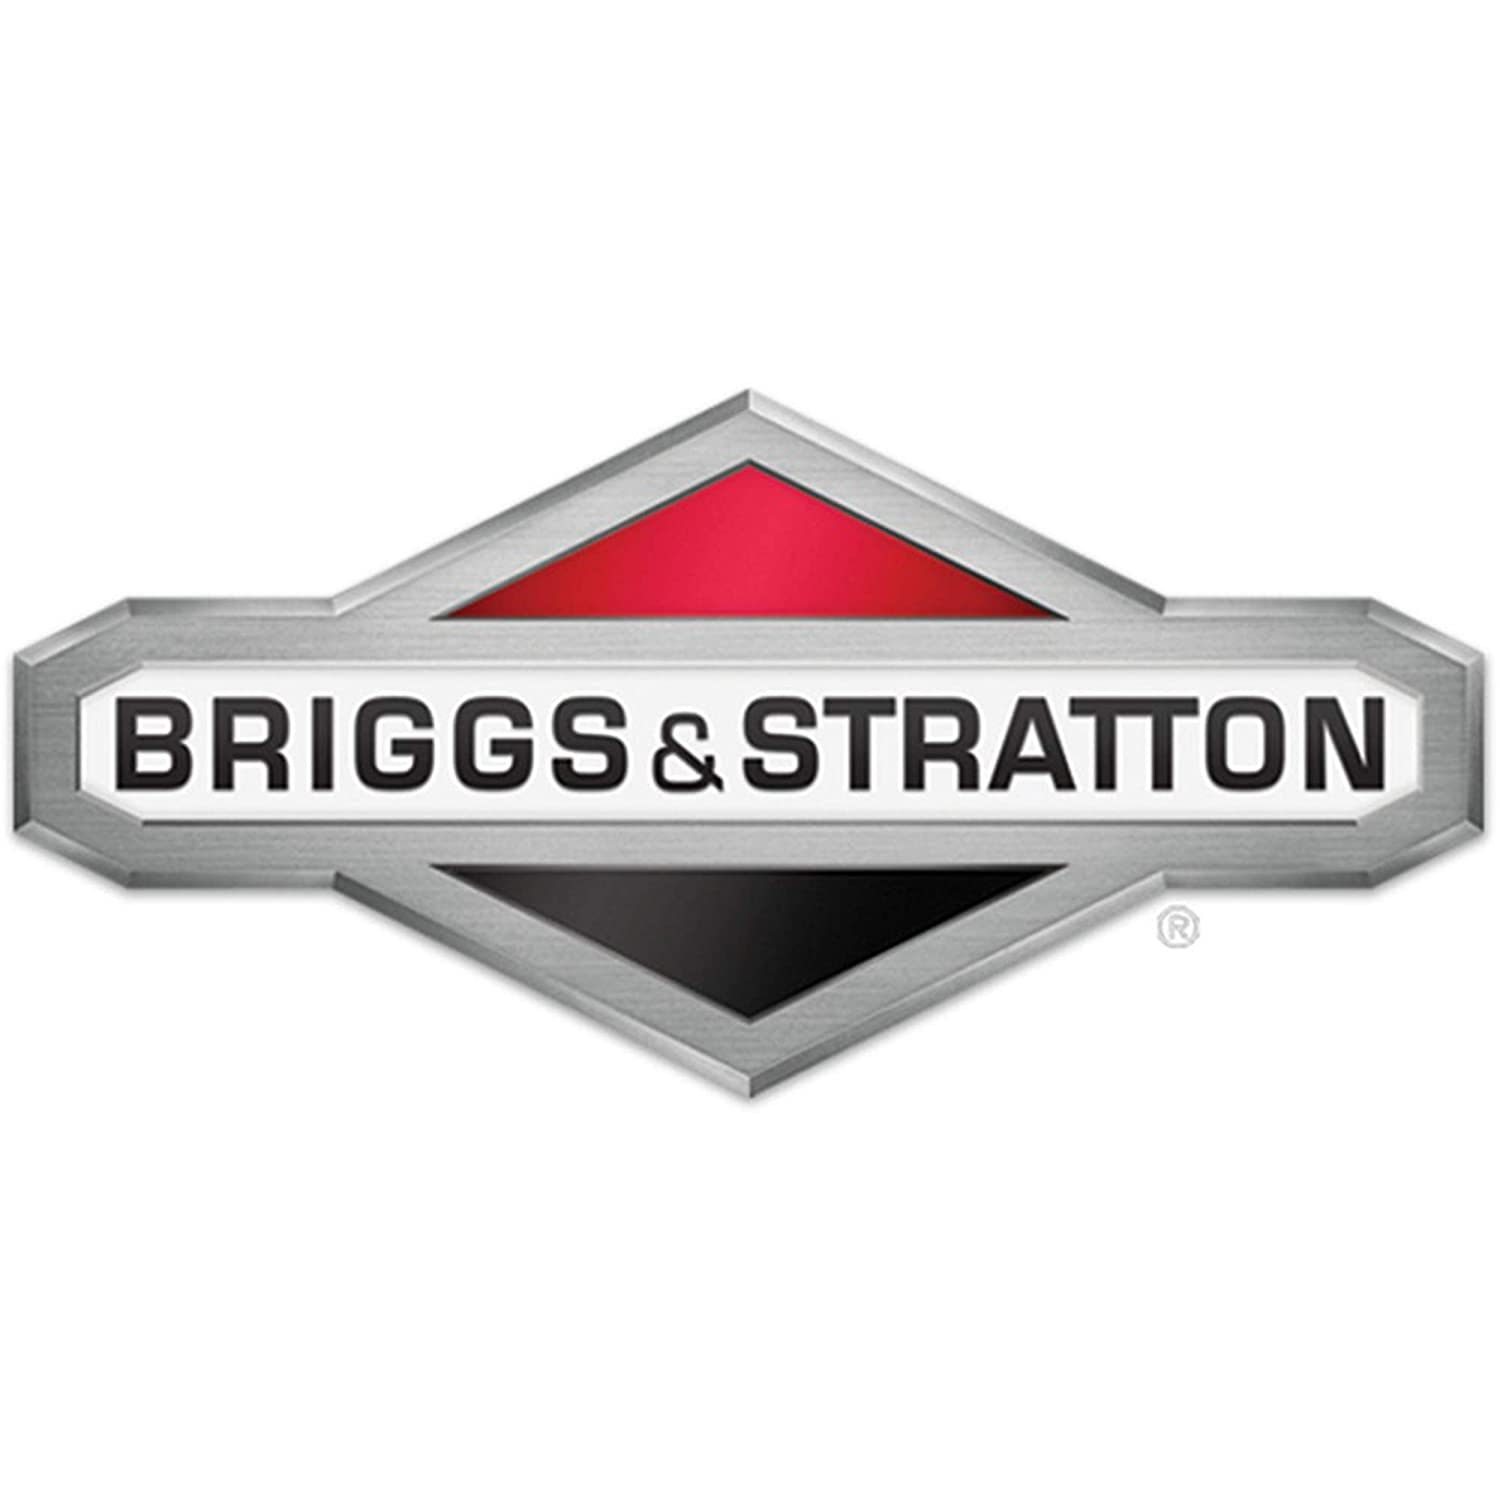 Briggs Stratton 592830 Alternator Lawn Mower Tune 8 Hp Coil Wiring Diagram Free Picture Up Kits Garden Outdoor